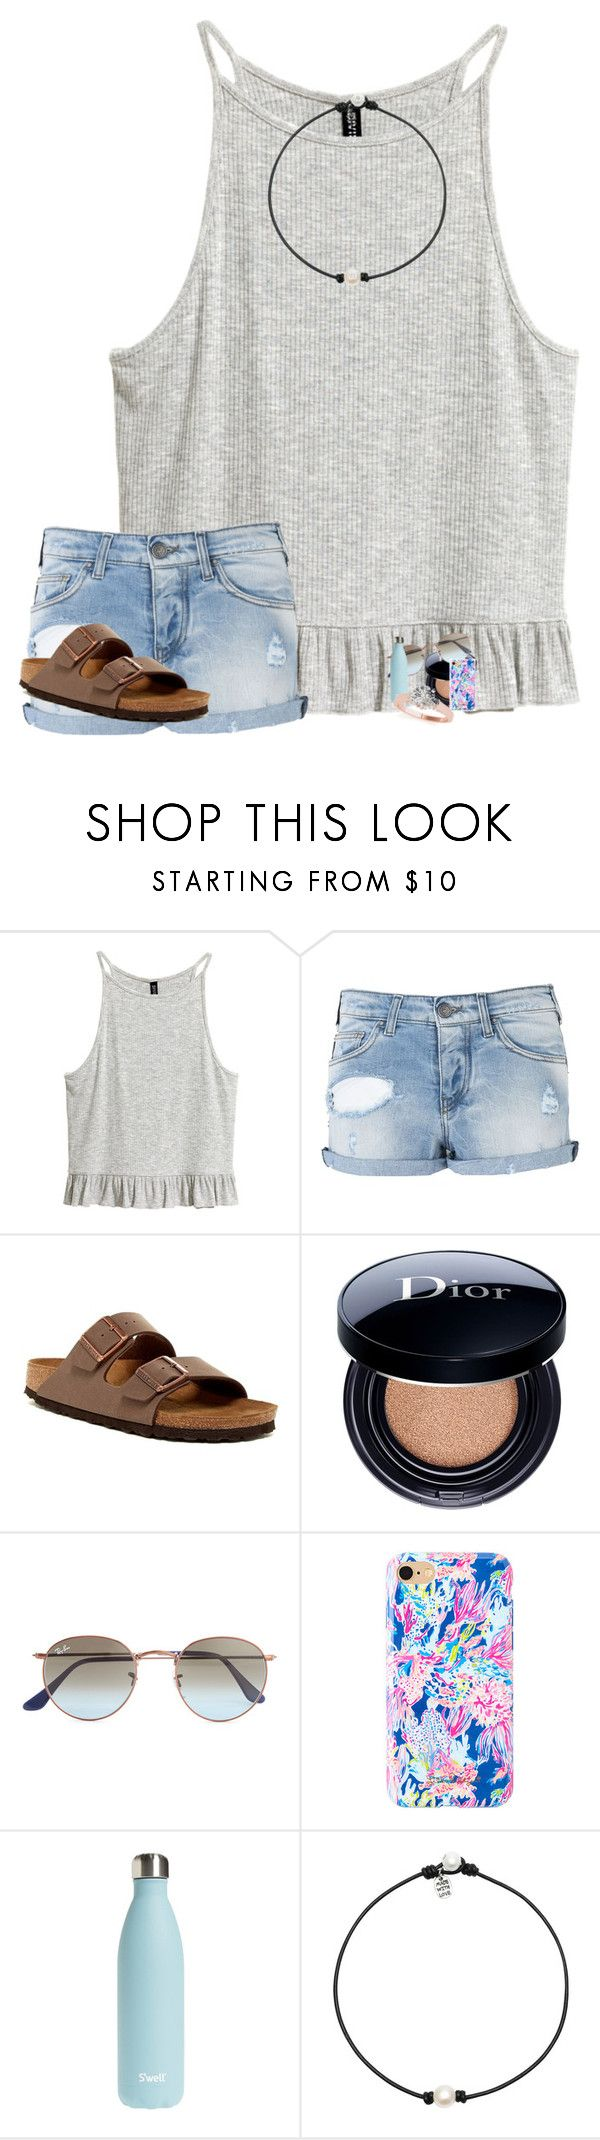 """•❤️❤️❤️•//mack\\"" by preppy-pass-girls ❤ liked on Polyvore featuring Armani Jeans, Birkenstock, Christian Dior, Ray-Ban, Lilly Pulitzer and S'well"